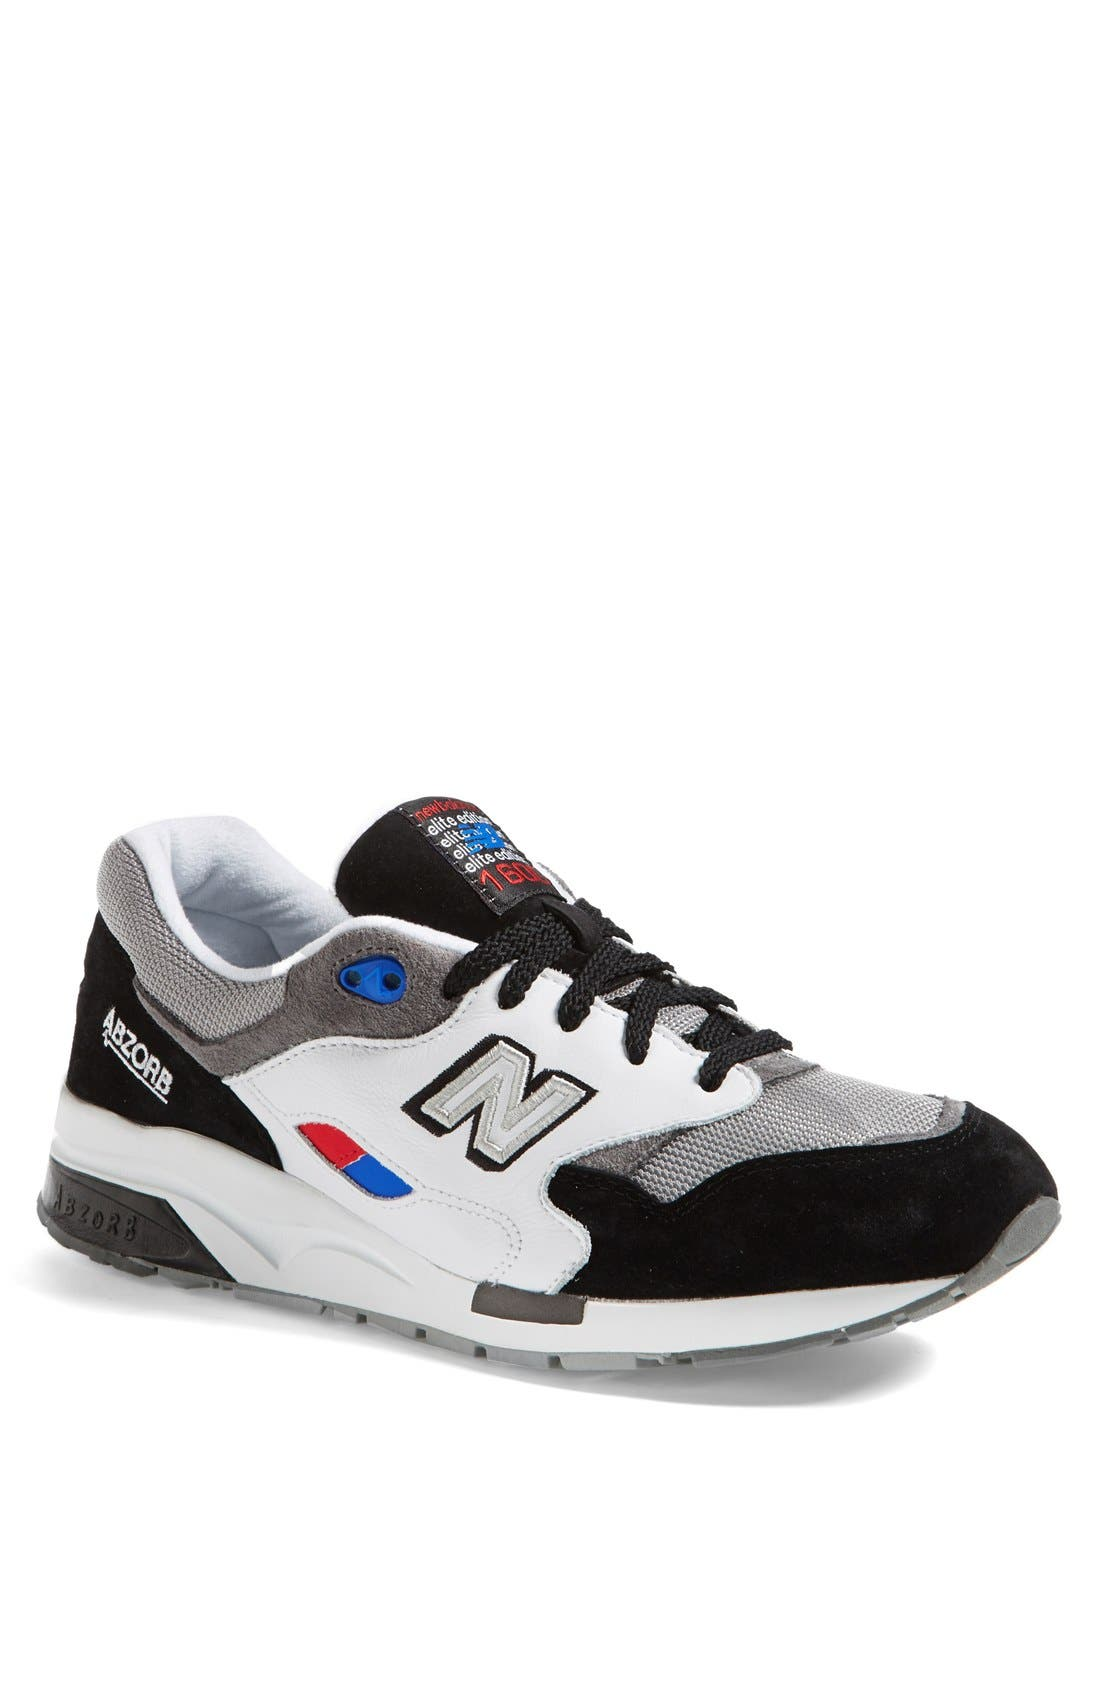 Alternate Image 1 Selected - New Balance '1600' Sneaker (Men)